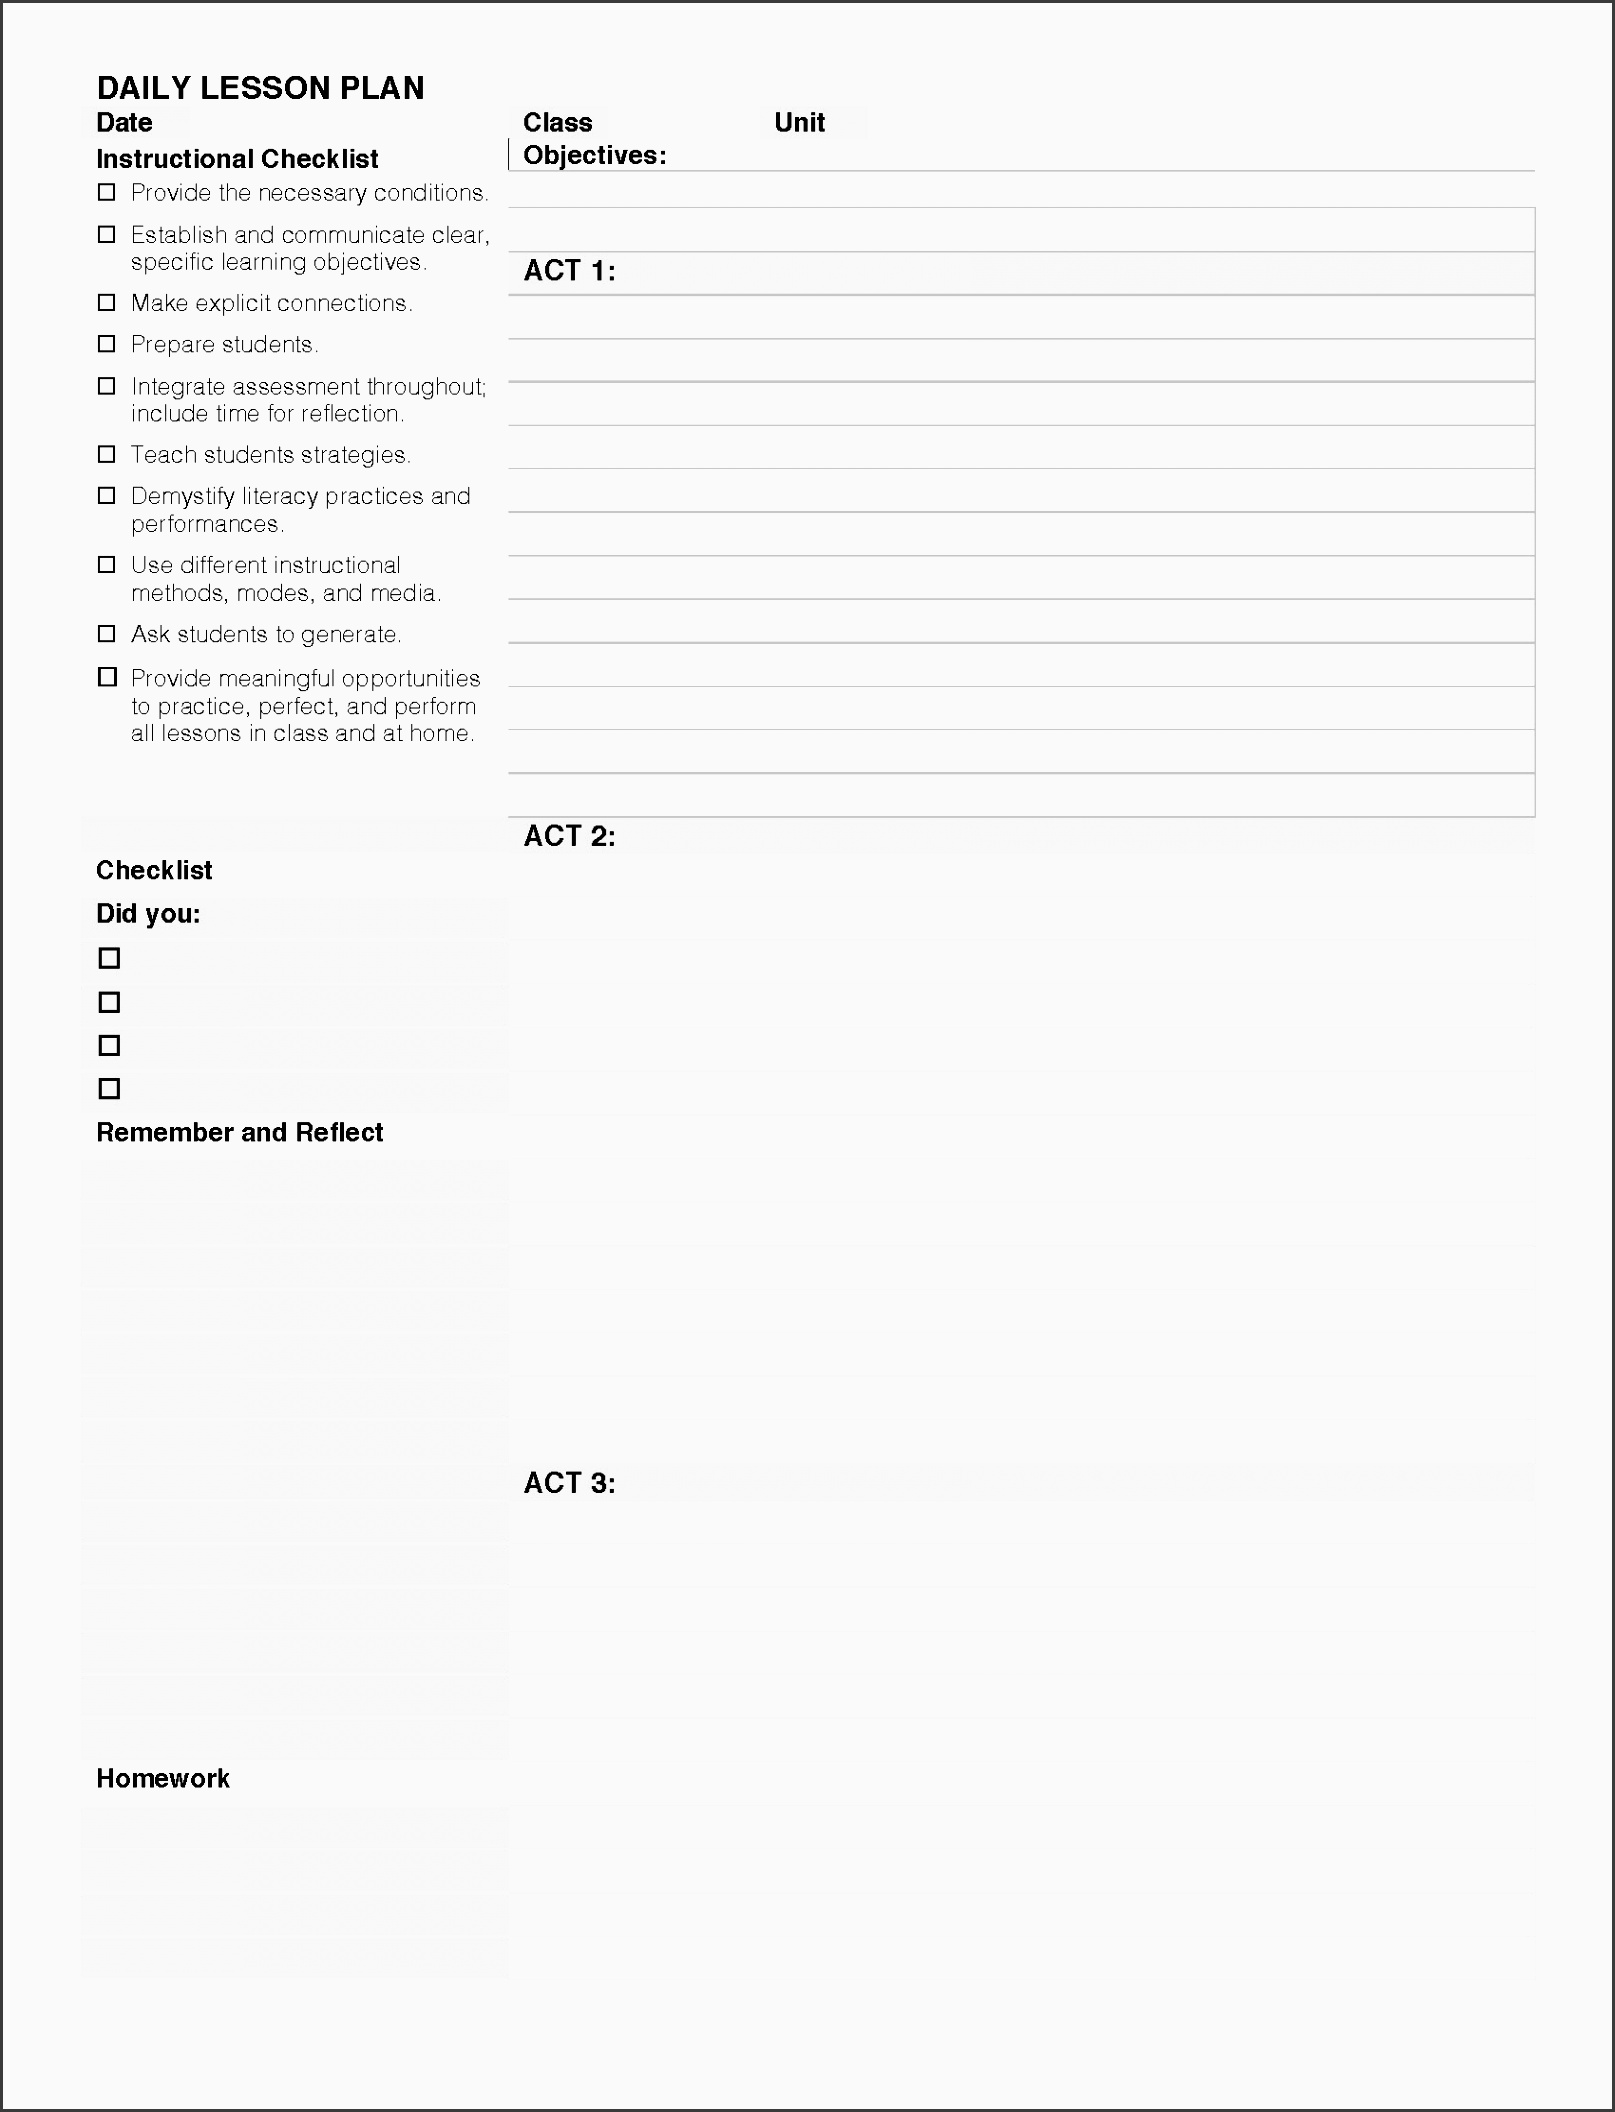 daily lesson plan template 3 acts